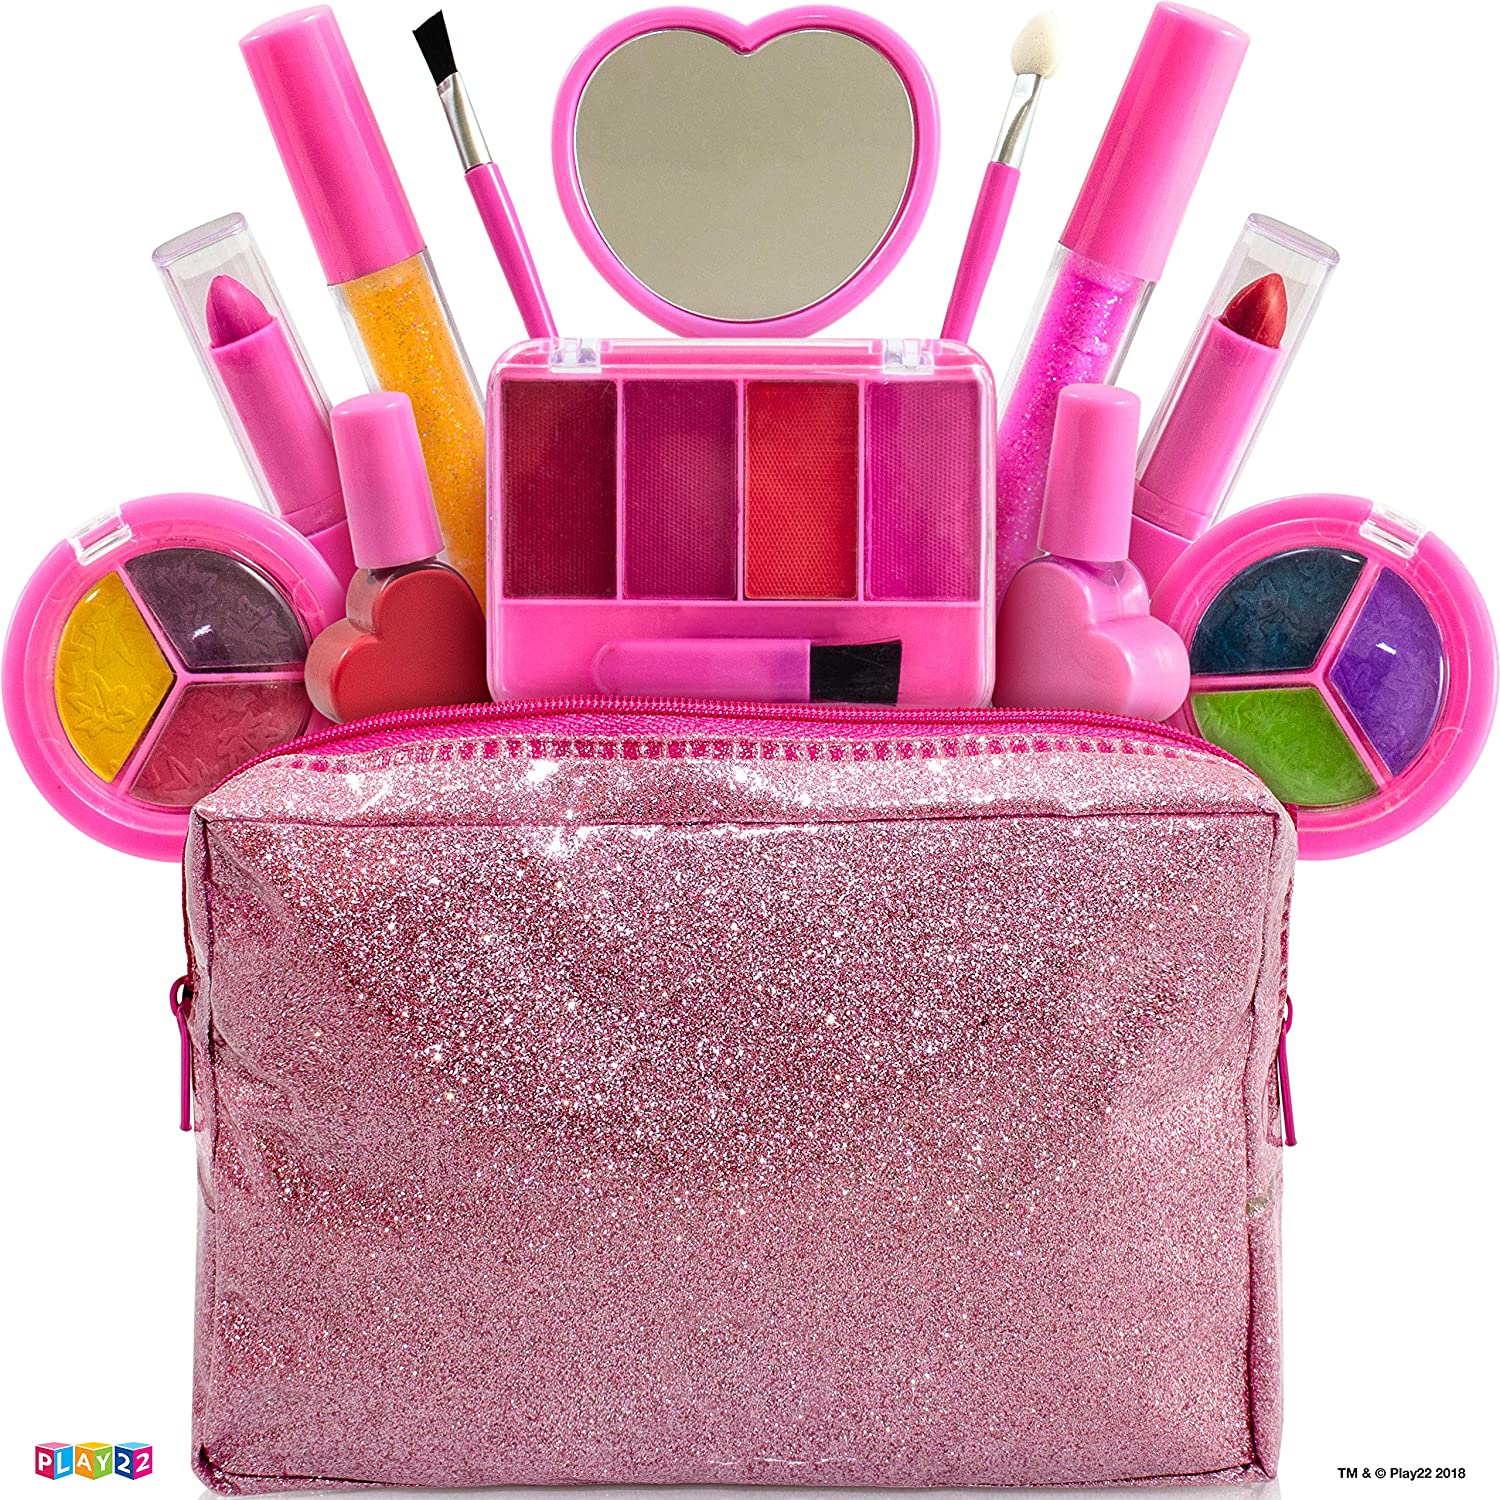 Kids Makeup Kit For Girl – 13 Piece Washable Kids Makeup Set My First Princess Make Up Kit Includes Blush, Lip Gloss, Eyeshadows, Lipsticks, Brushes, Mirror Cosmetic Bag Best Gift For Girls Original